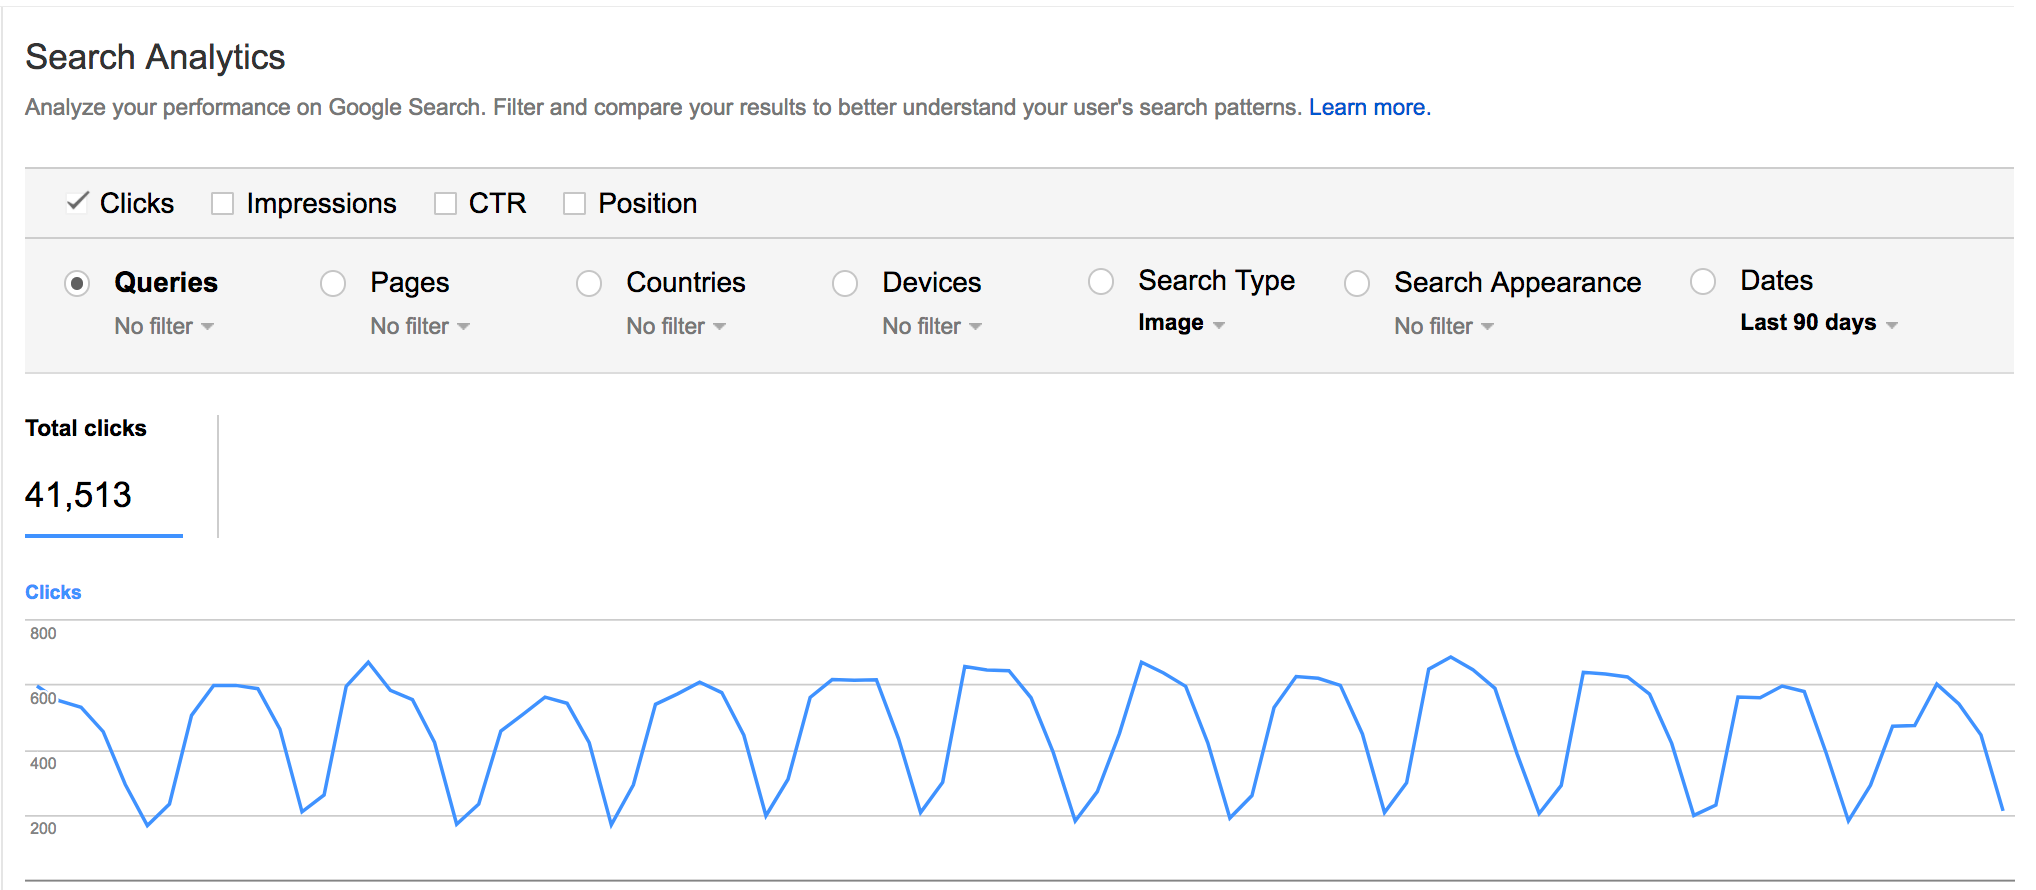 Track image search visits in Google Search Console. Go to Search Traffic > Search Analytics> Search Type: Image.